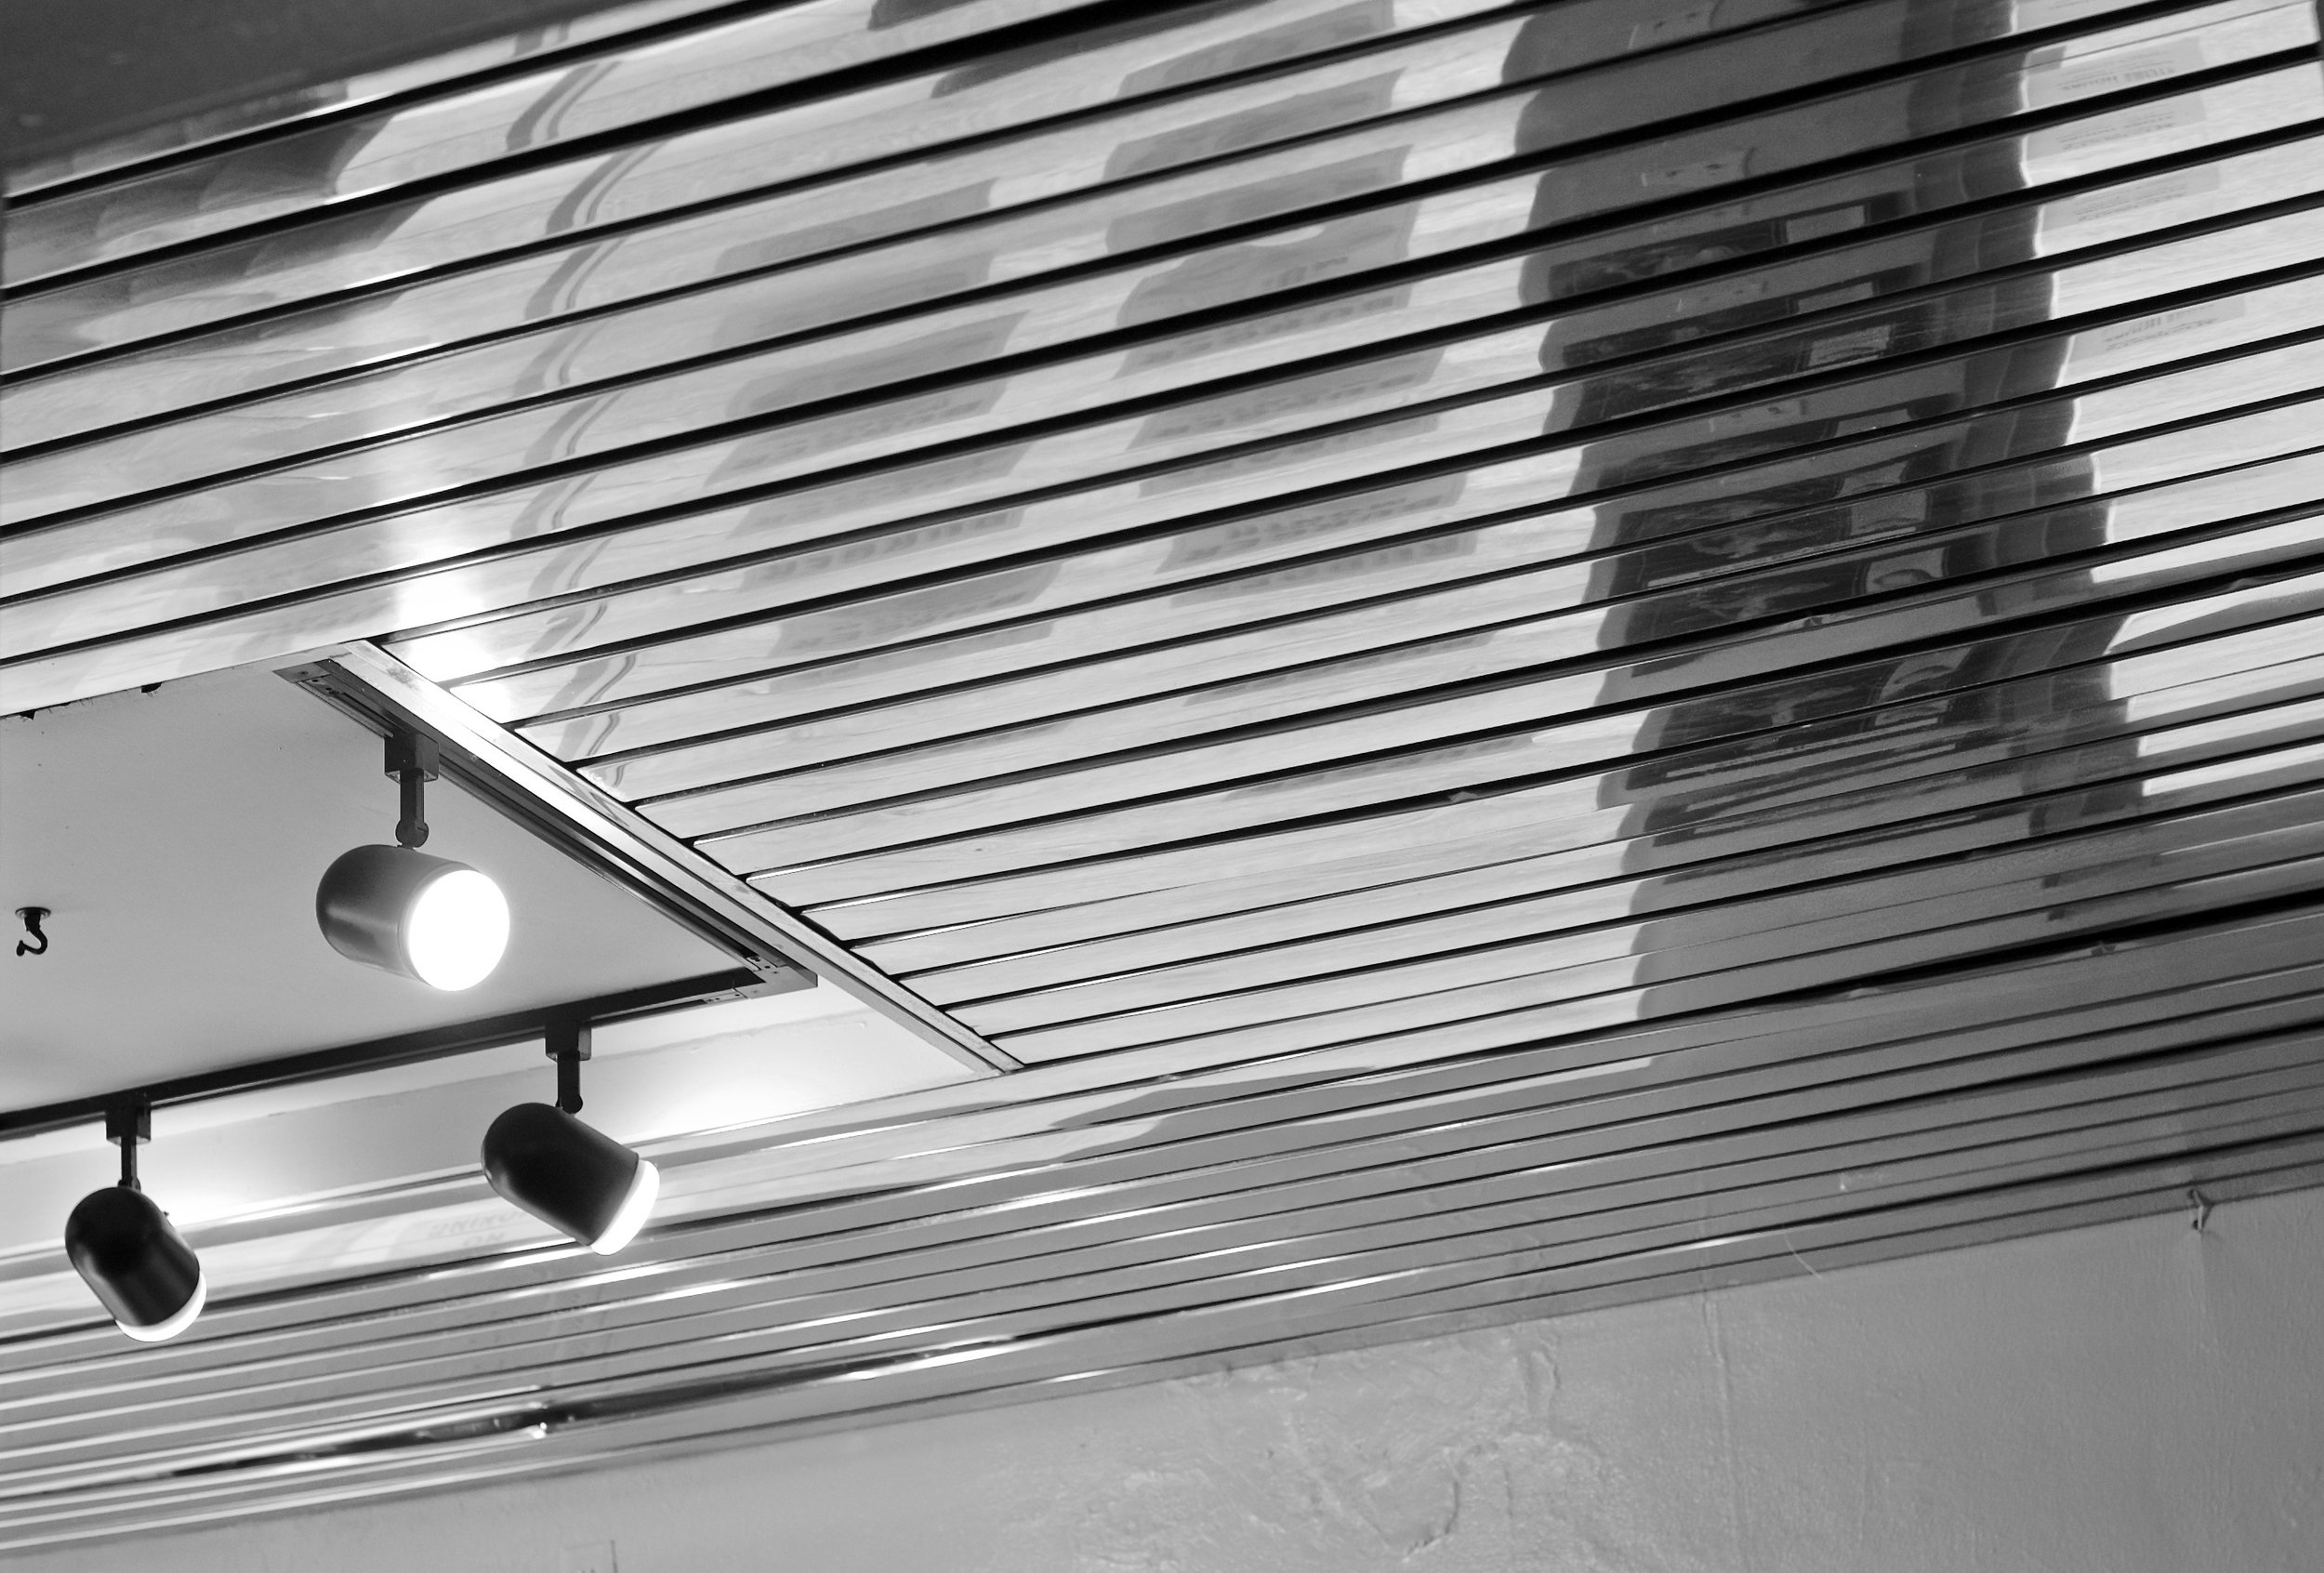 Ceiling Strips.   Madison, Wisconsin.   January 2016.   © William D. Walker